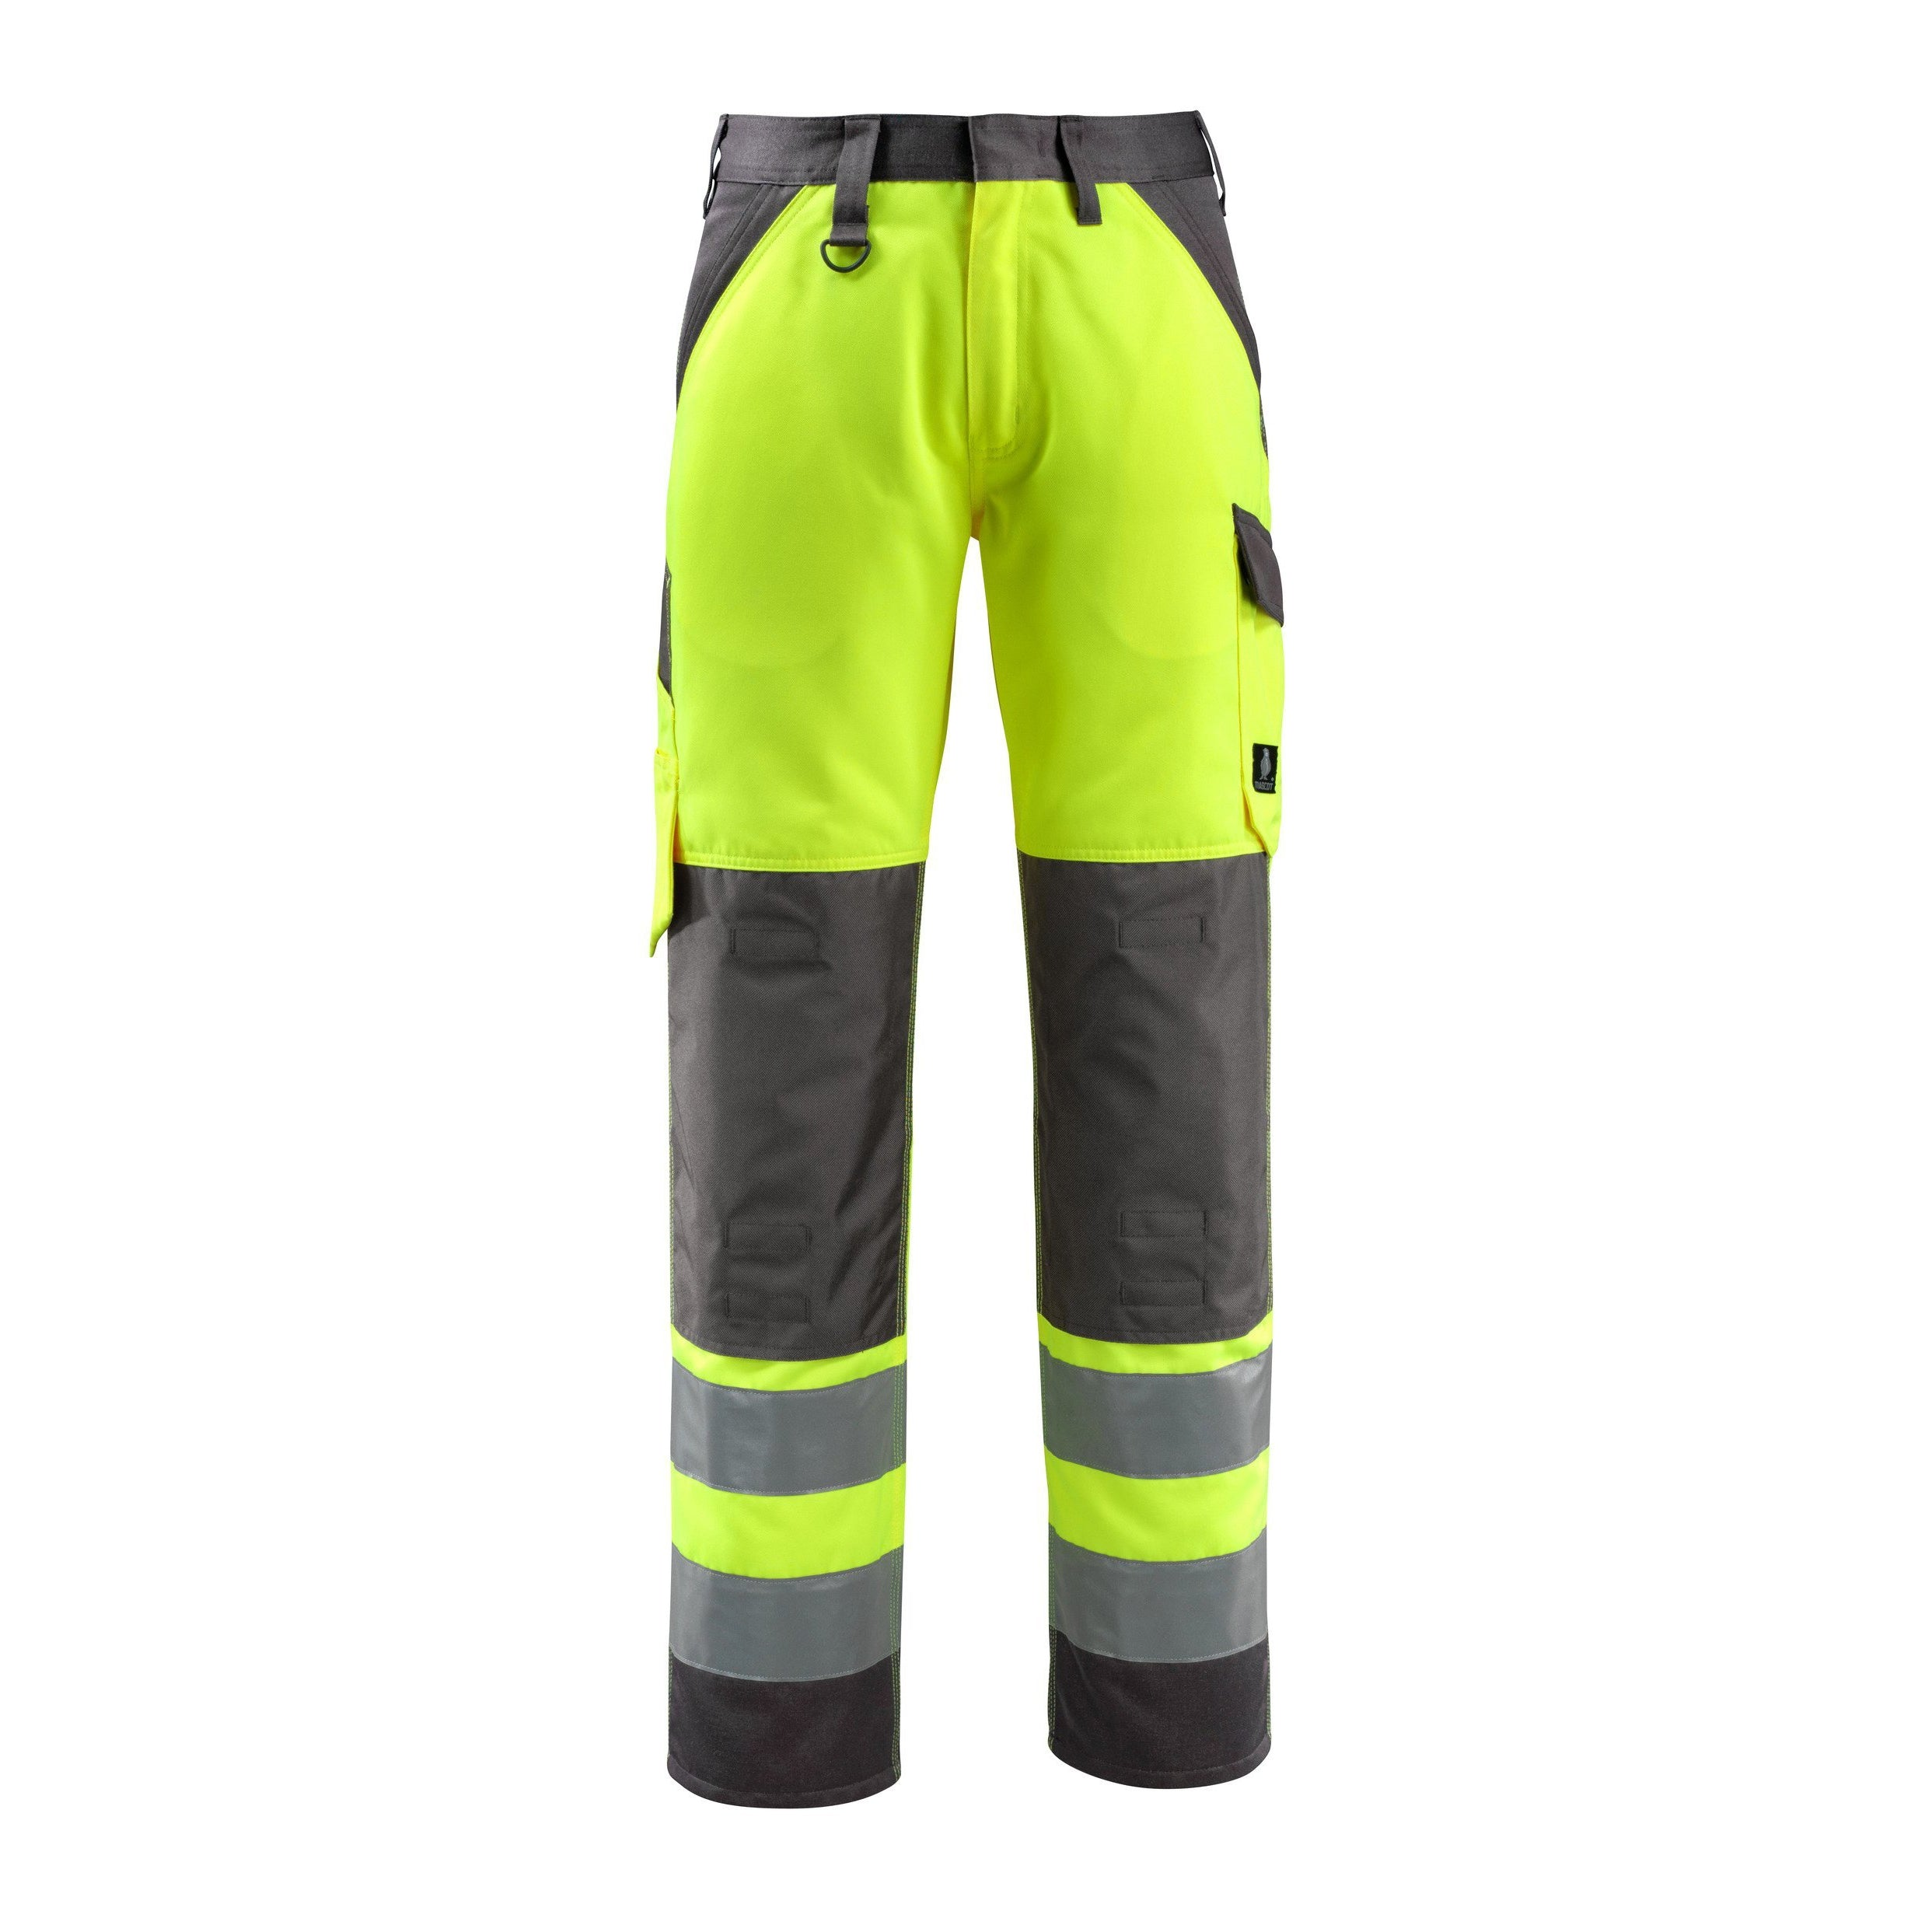 Mascot Maitland Safe Light Trousers With Kneepad Pockets